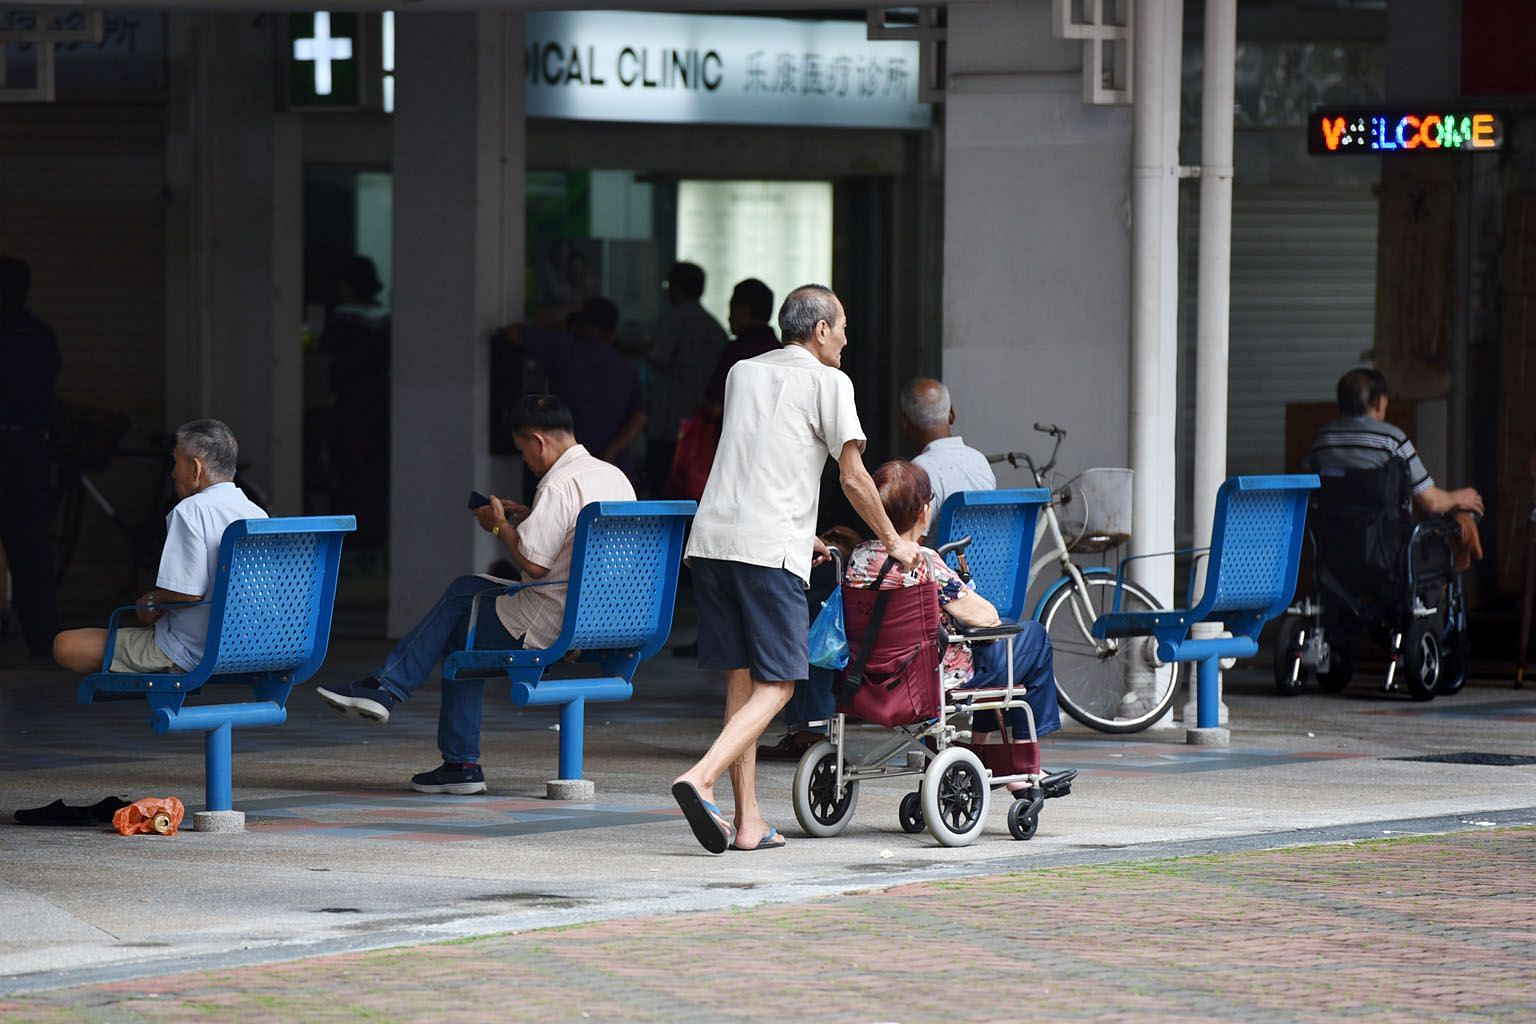 The writers concluded from a research project on the basic needs of the elderly that ordinary people acknowledge their common experiences with one another more than they did their differences. ST PHOTO: JASMINE CHOONG